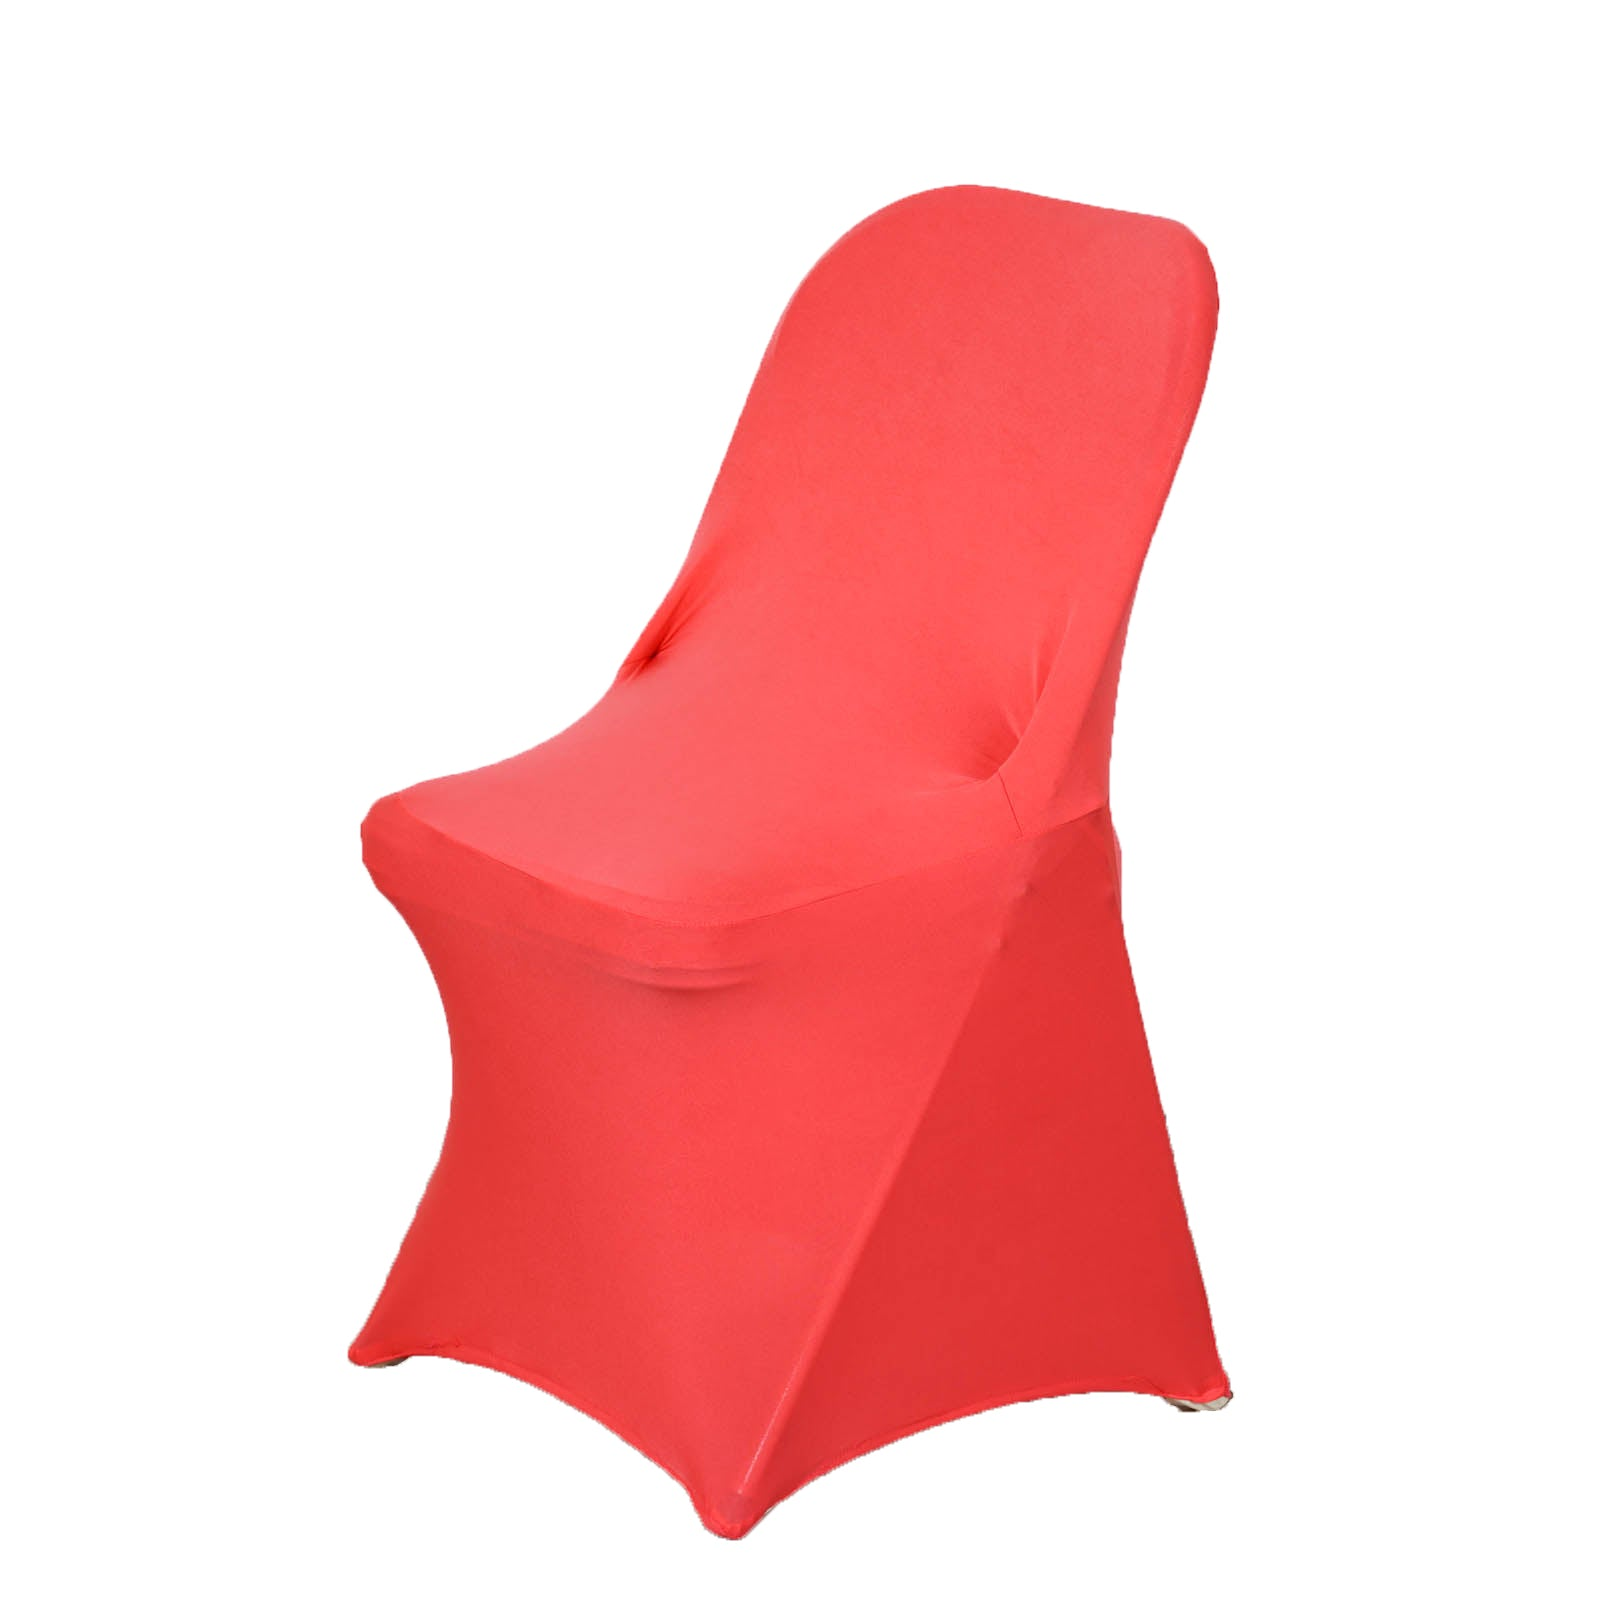 Spandex Stretch Folding Chair Cover Coral Efavormart